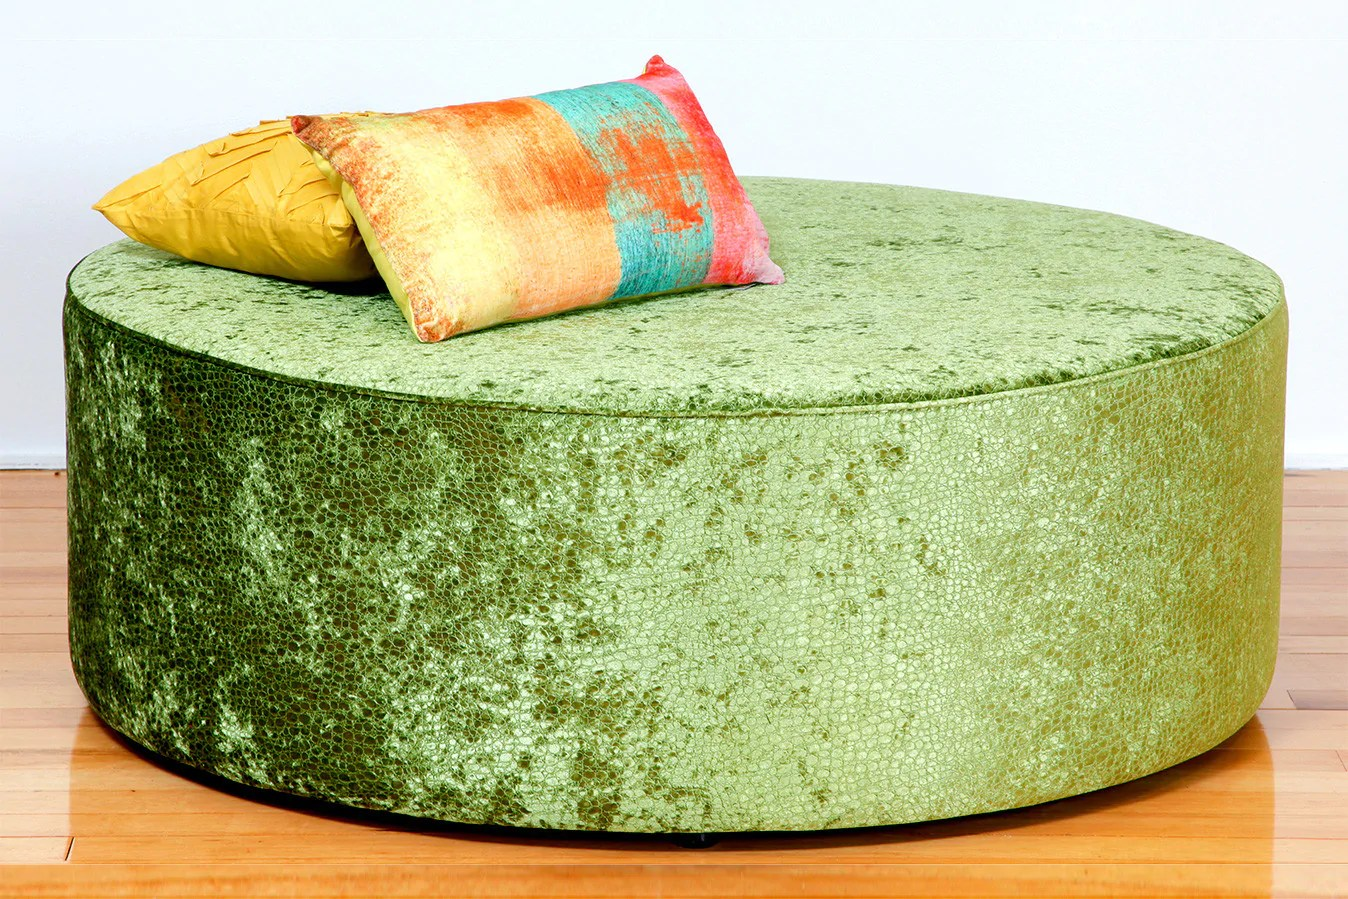 Oreo Large Round Upholstered Fabric or Leather Ottoman | Bespoke Furniture Gallery Perth